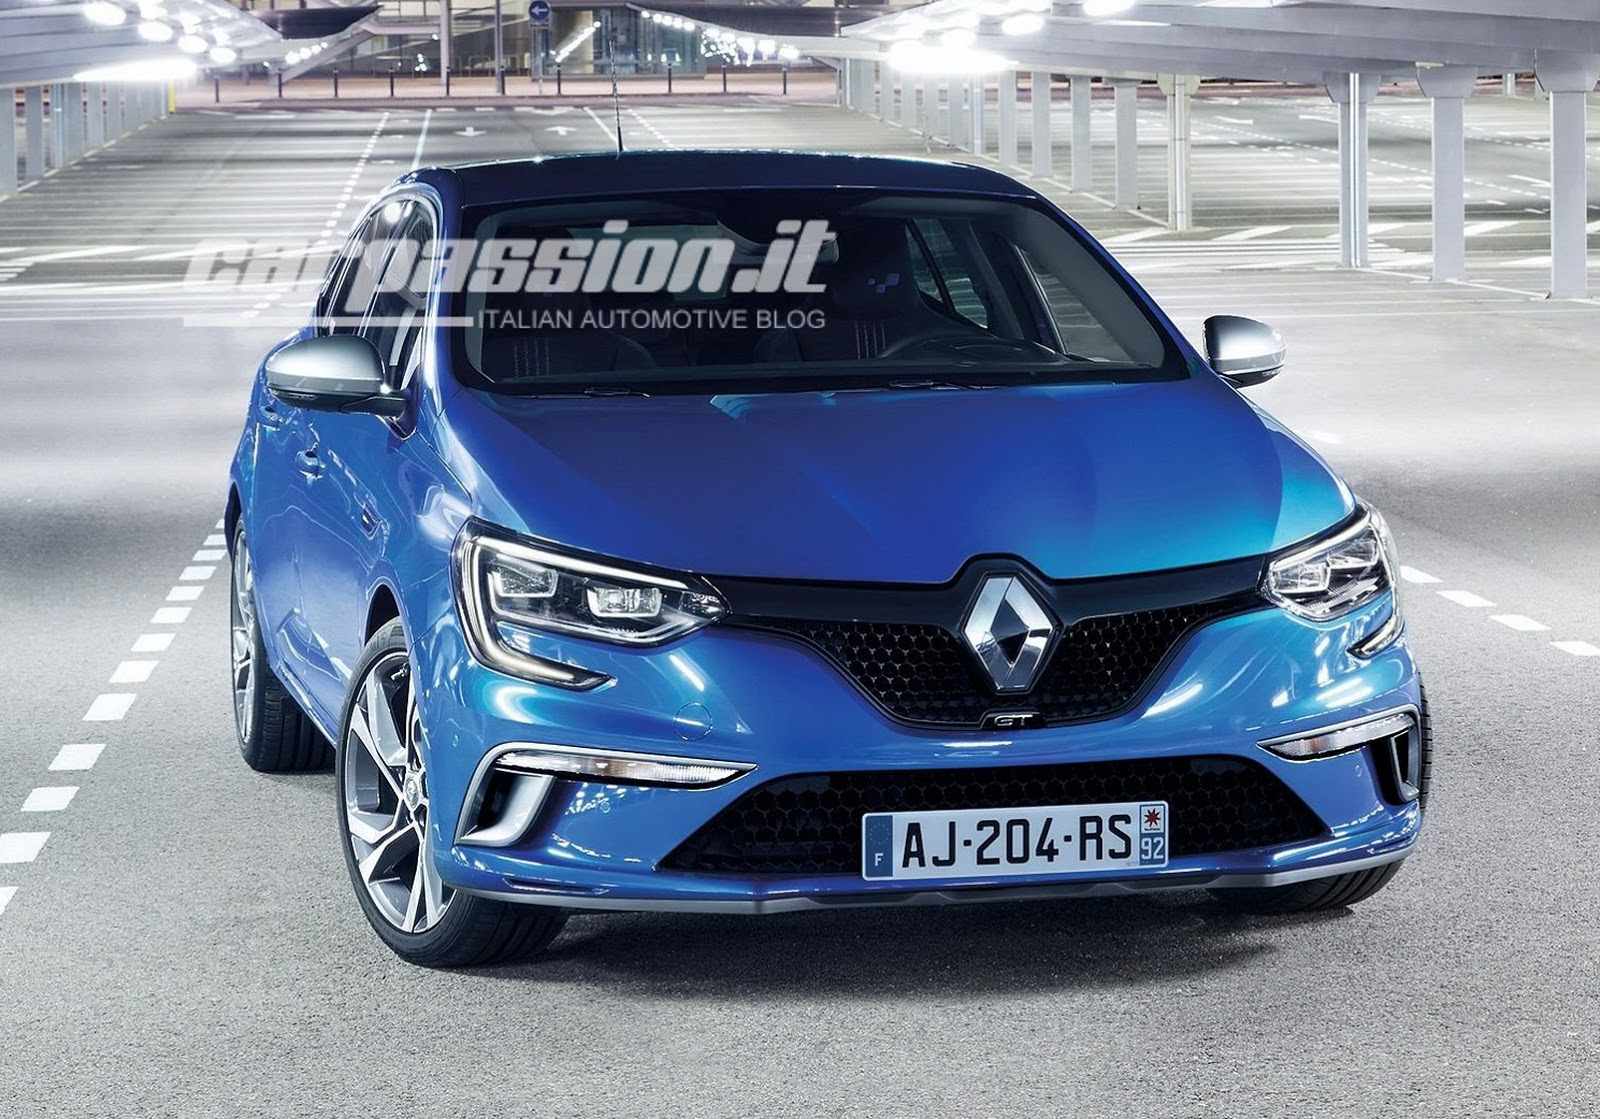 All-New 2016 Renault Megane Revealed In Official Photos ...